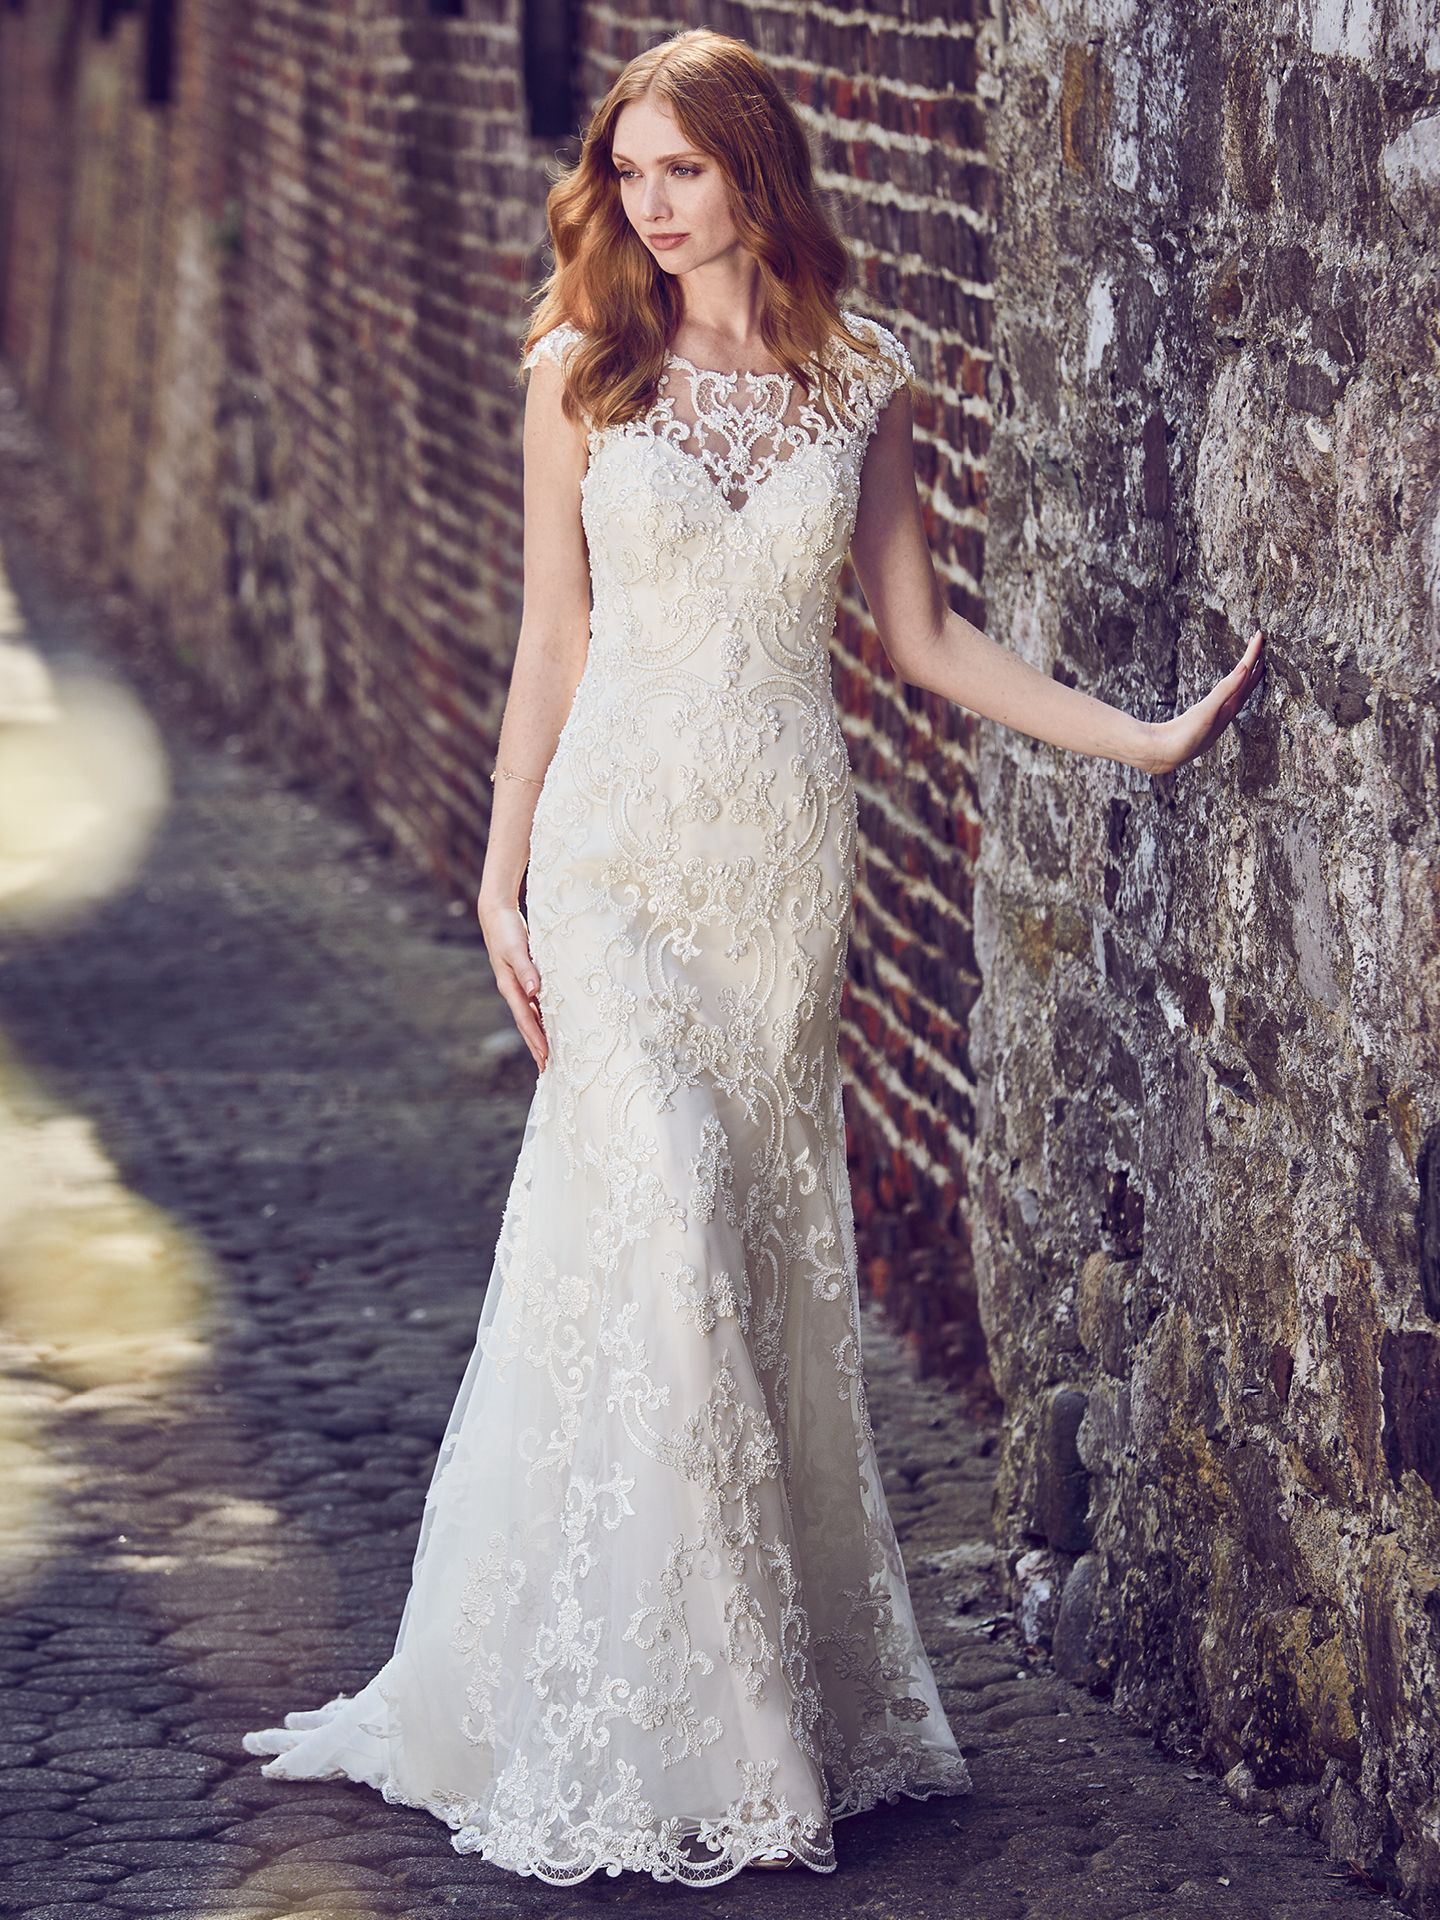 Flattering Wedding Dresses for Curvy Brides - Everly by Maggie Sottero